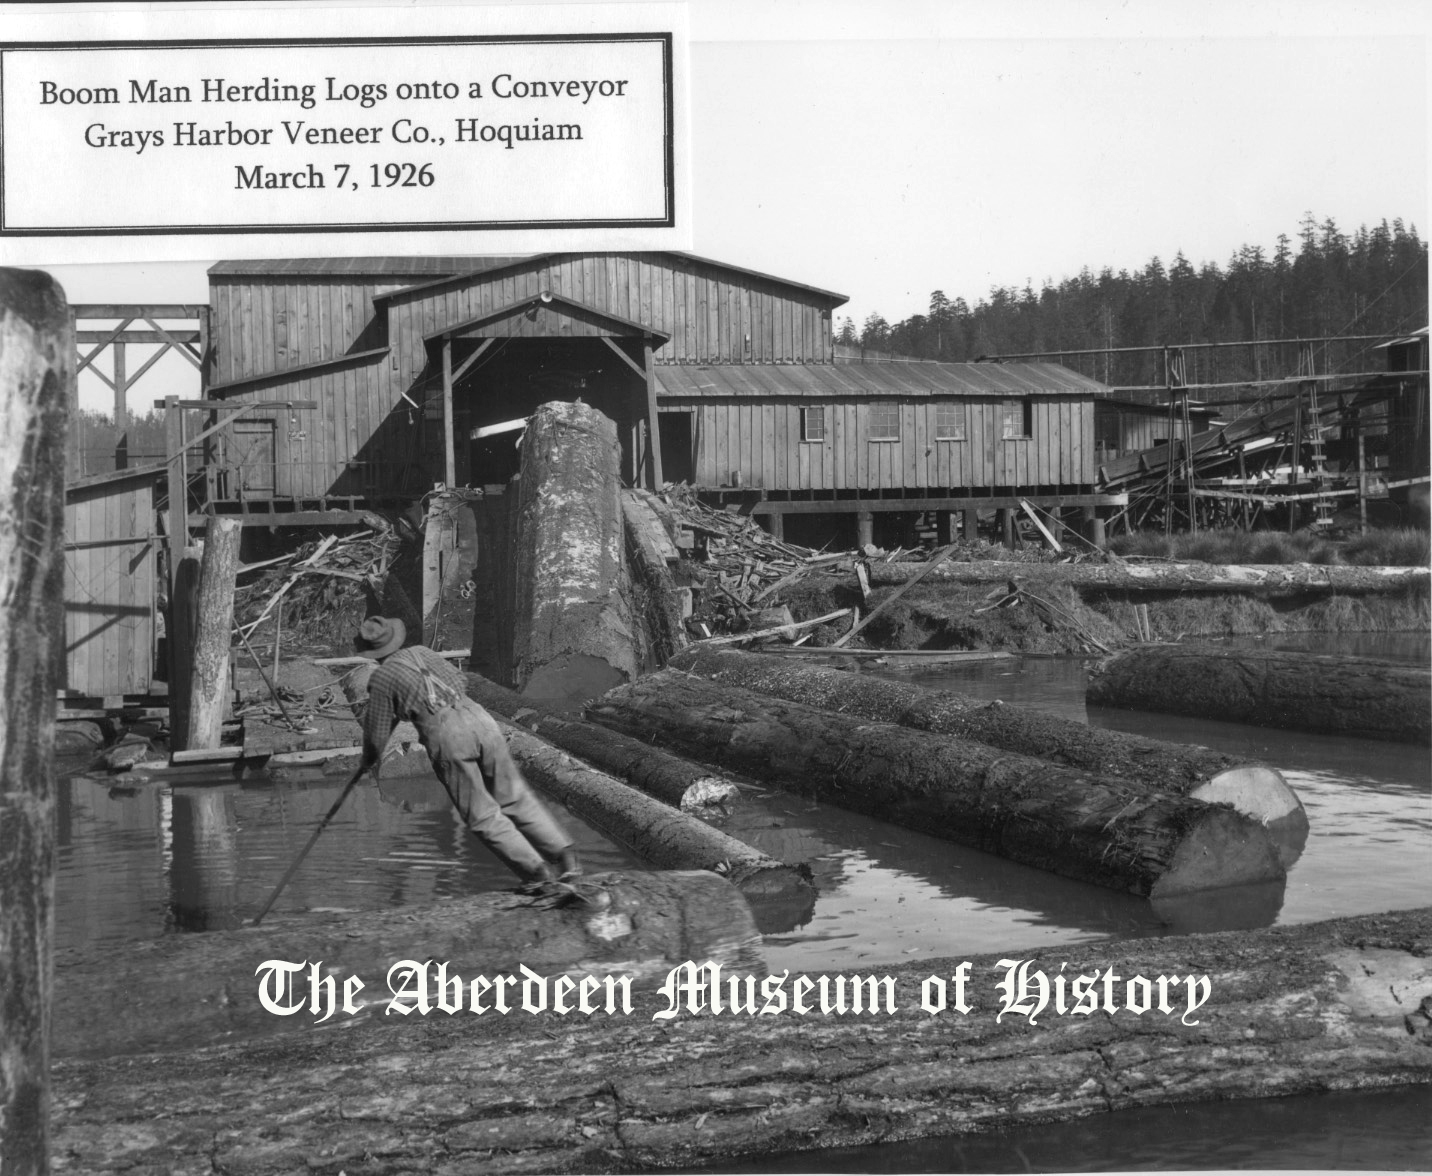 Grays Harbor Logging History 1926 Photo courtesy Aberdeen Museum of History